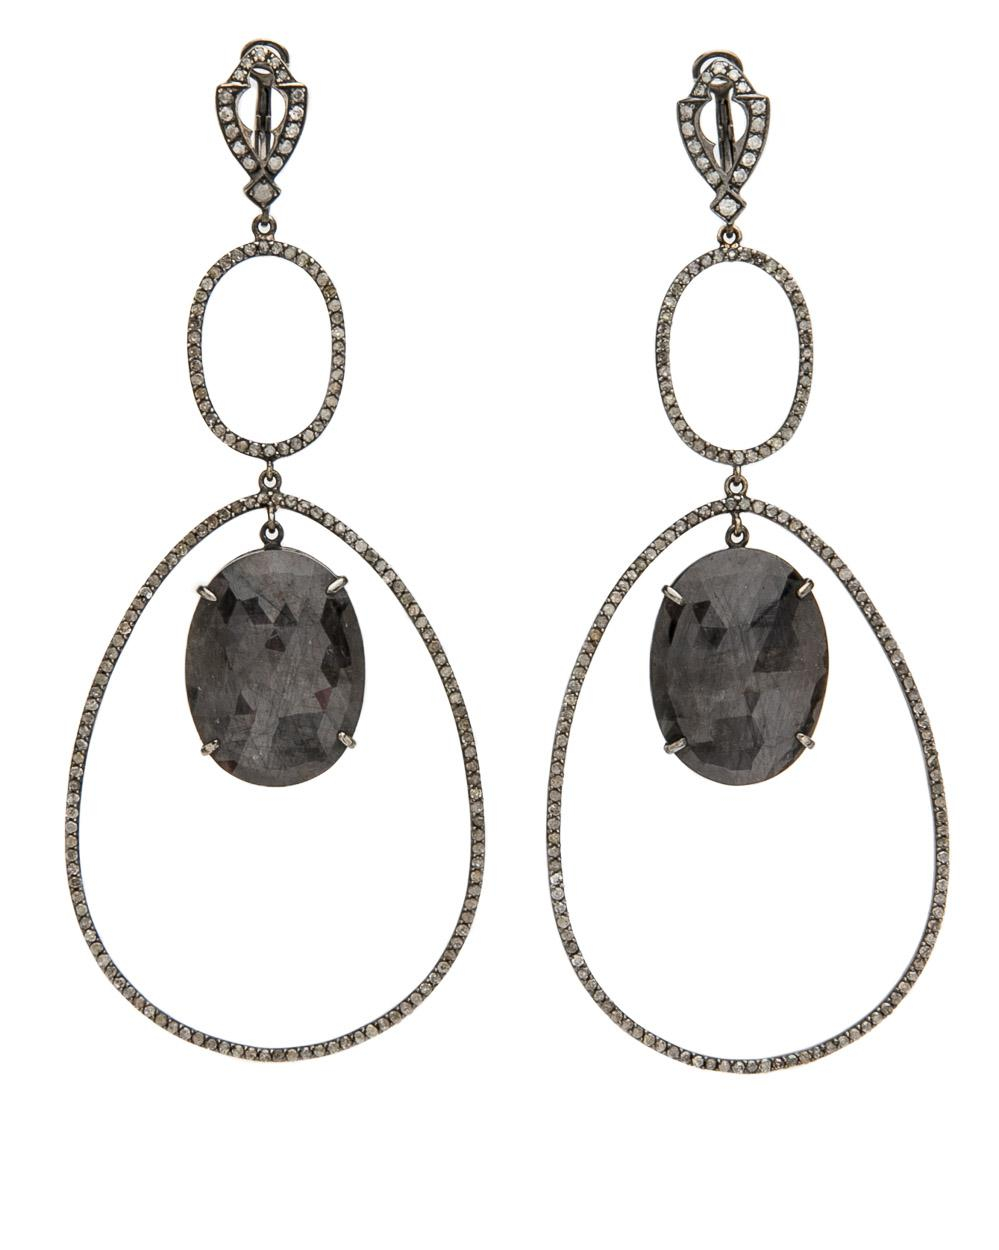 Loree Rodkin Polina Earrings in Metallics qY3TtWB2U